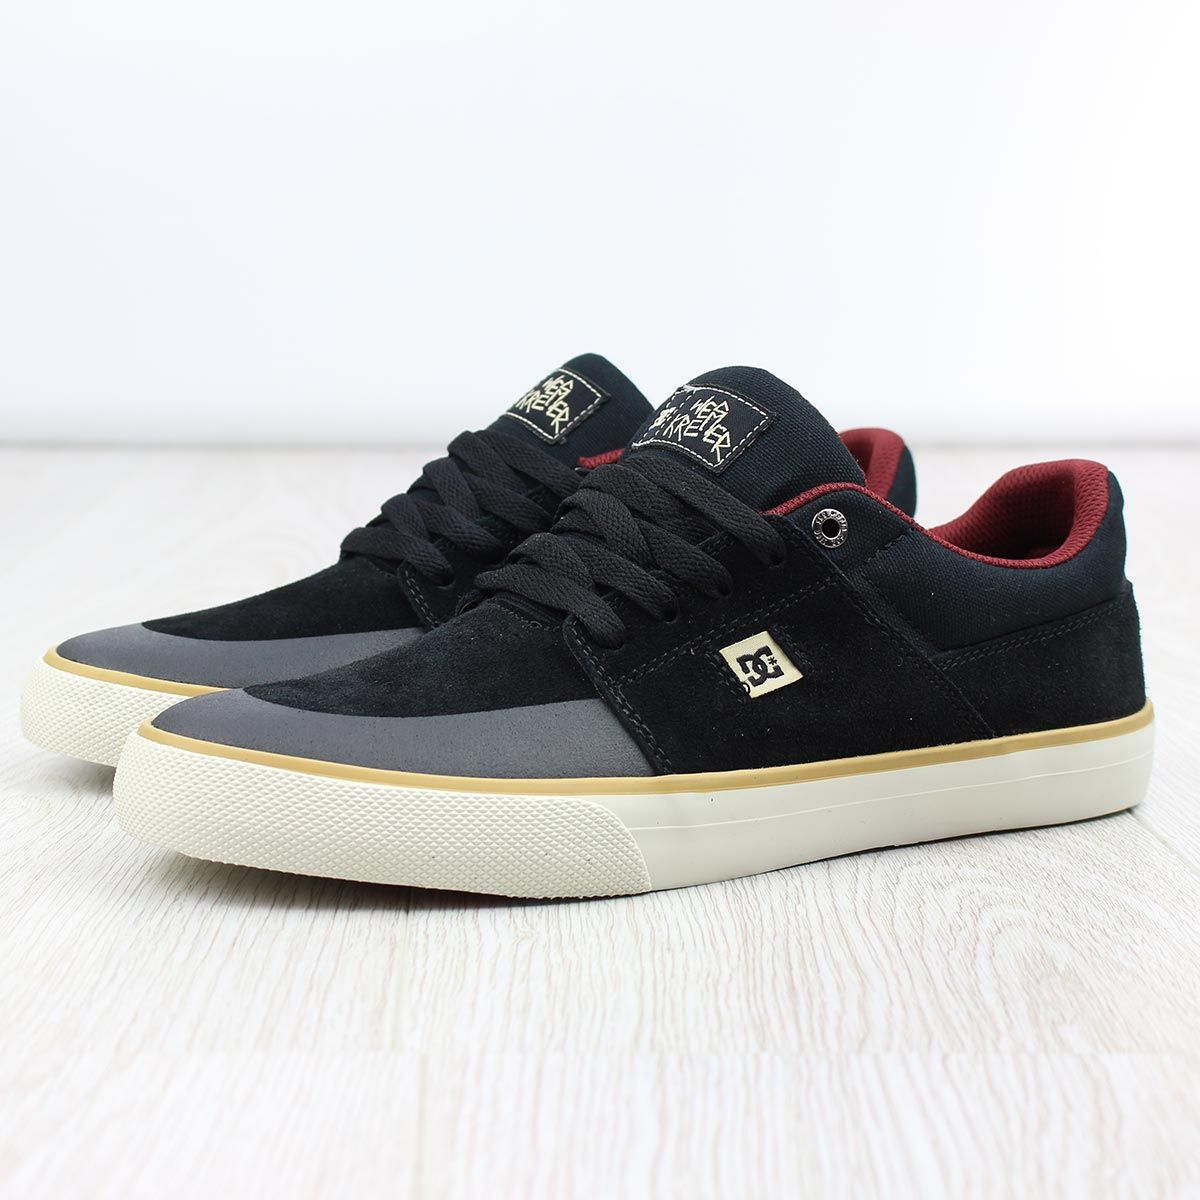 the best attitude df8cc 1a49b DC Shoes Wes Kremer S SE - Black Cream